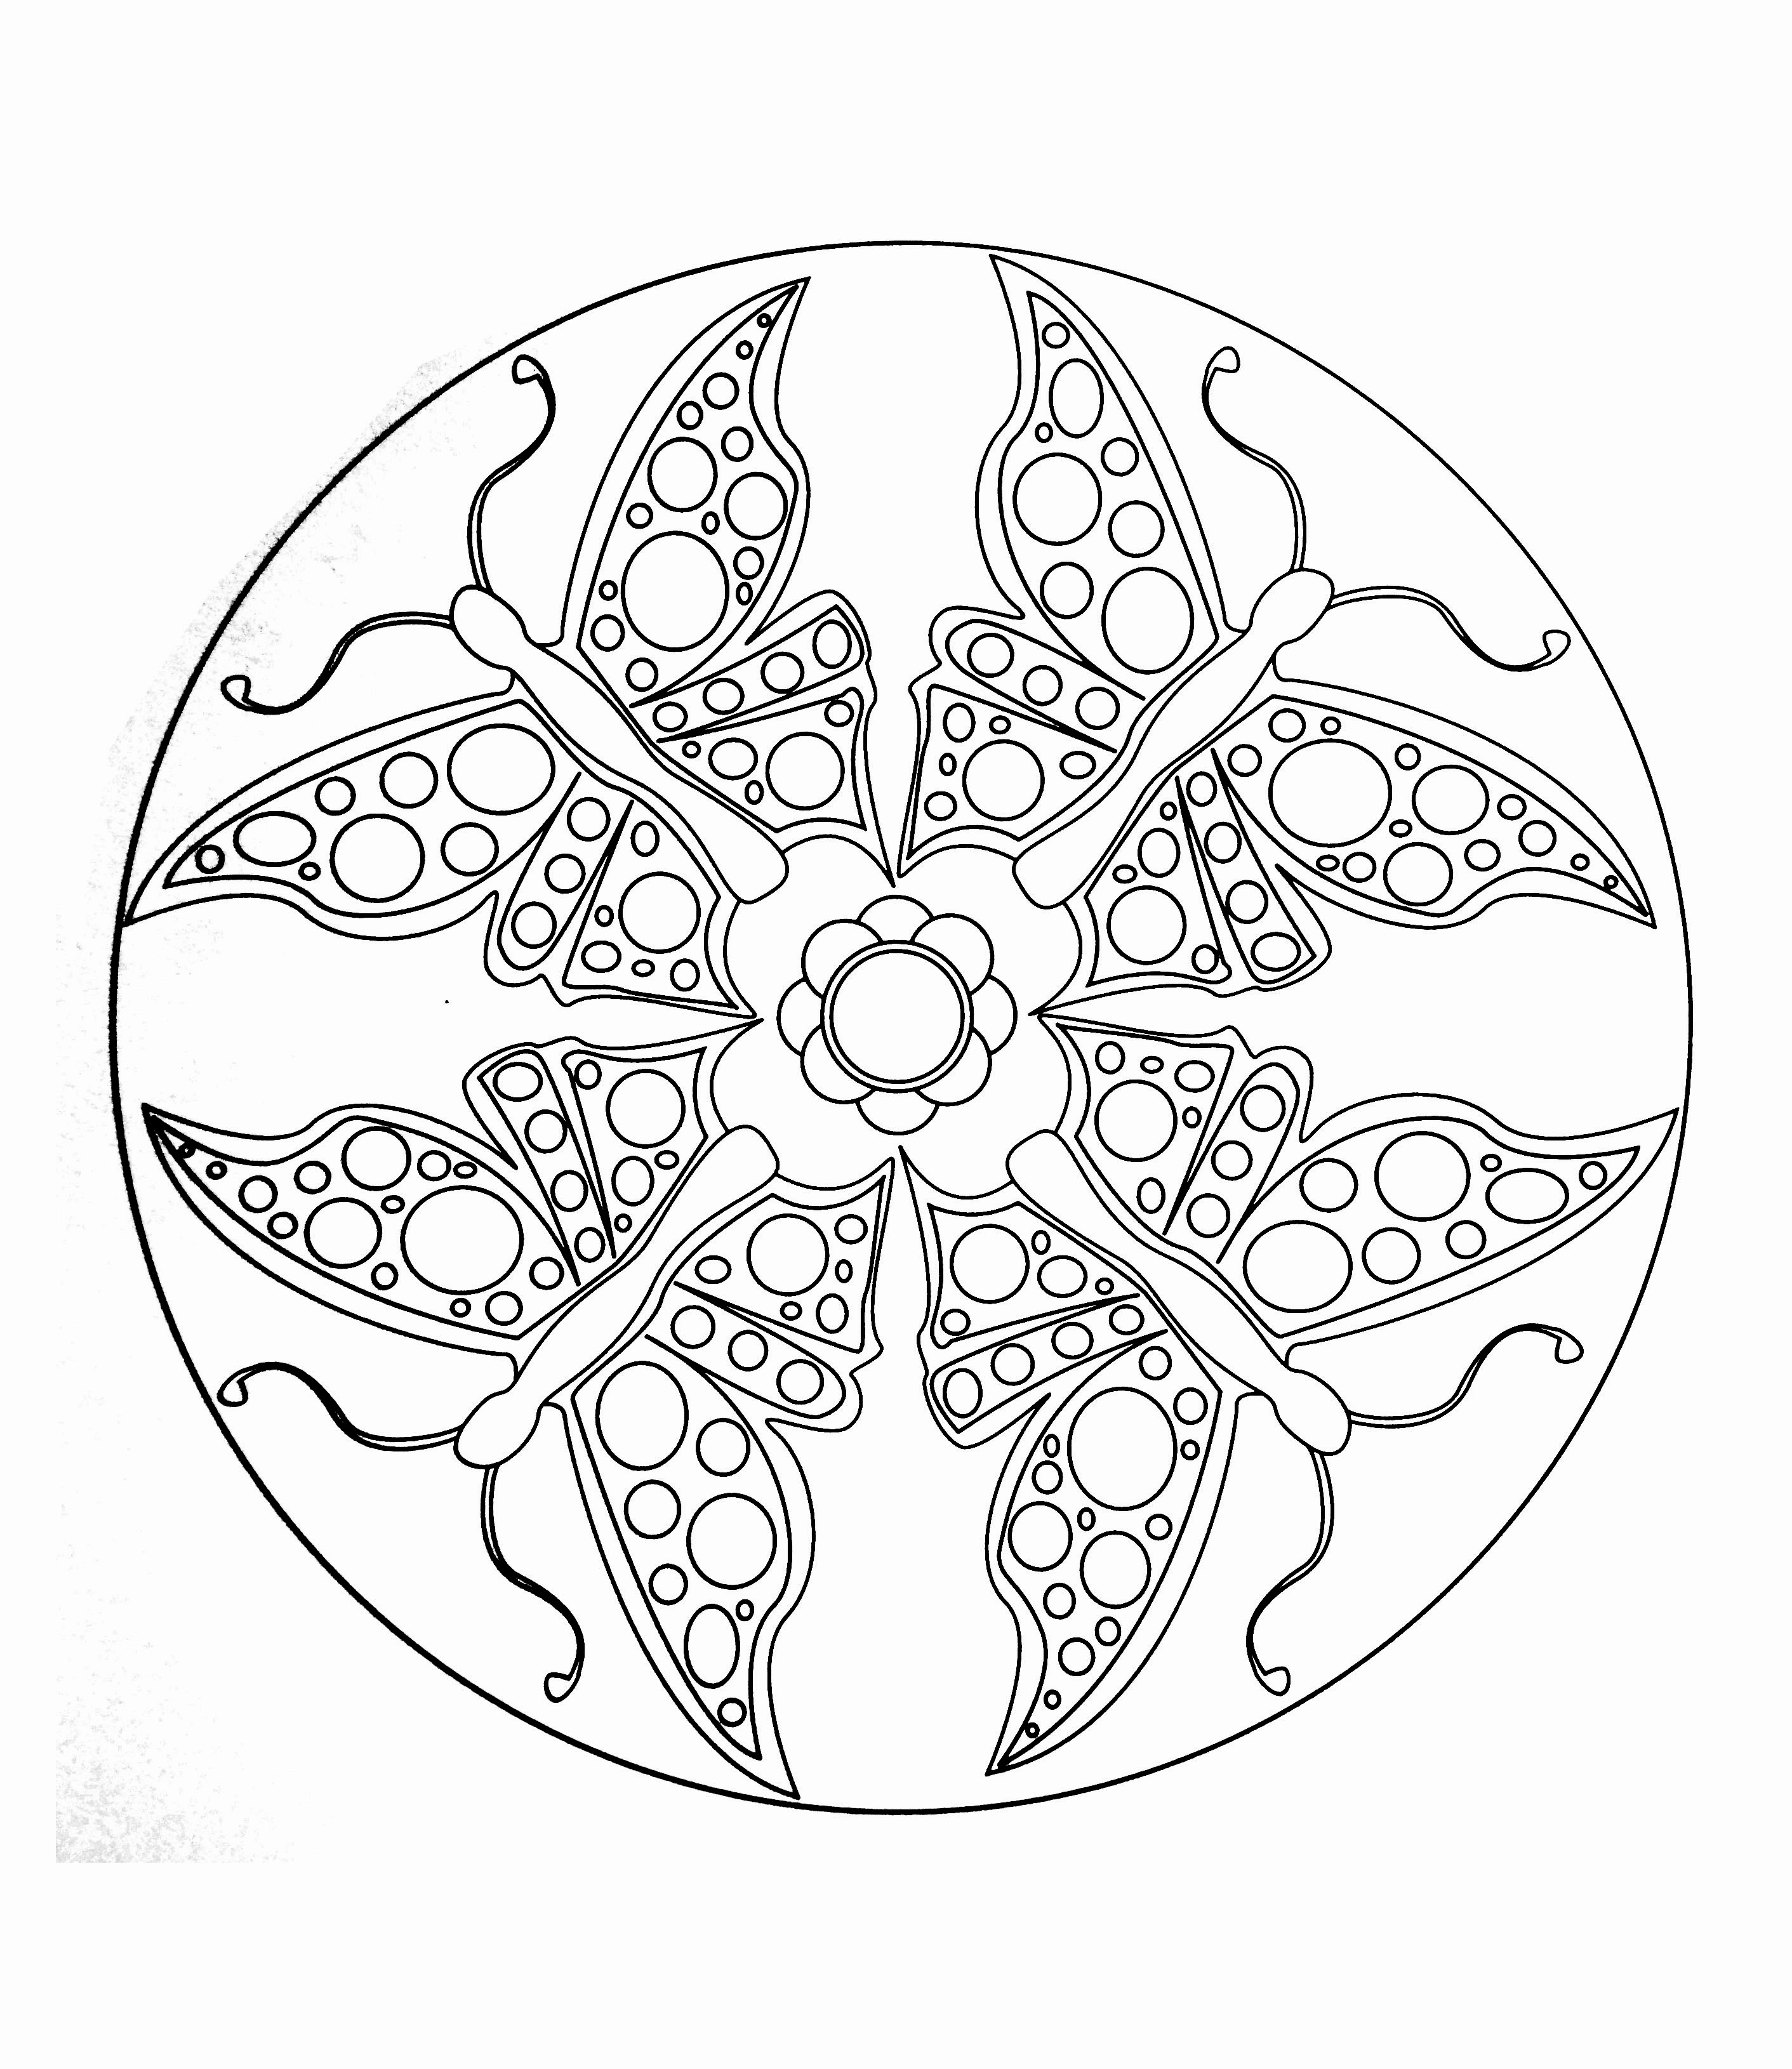 A Mandala coloring page easy to color, perfect for kids, with big areas to color. Children can color the shapes and figures anyway they like. It also gives your kids a sense of accomplishment when he finishes coloring a page.